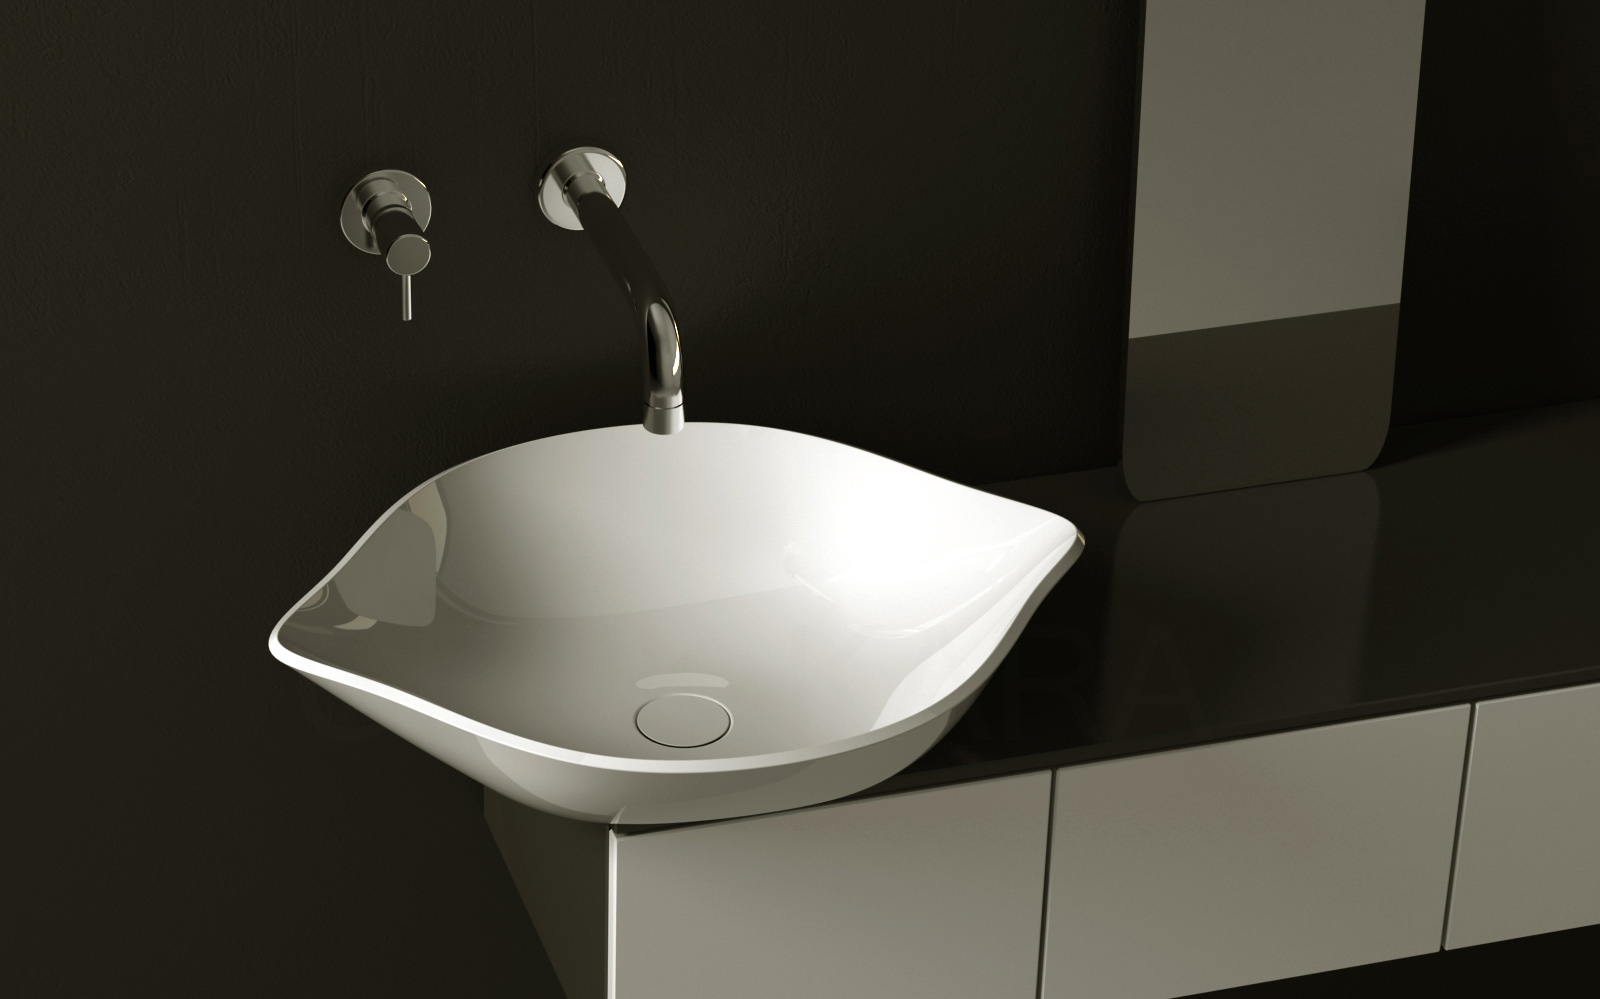 Cool fruit inspired bathroom sinks lemon by cenk kara for Bath toilet and sink